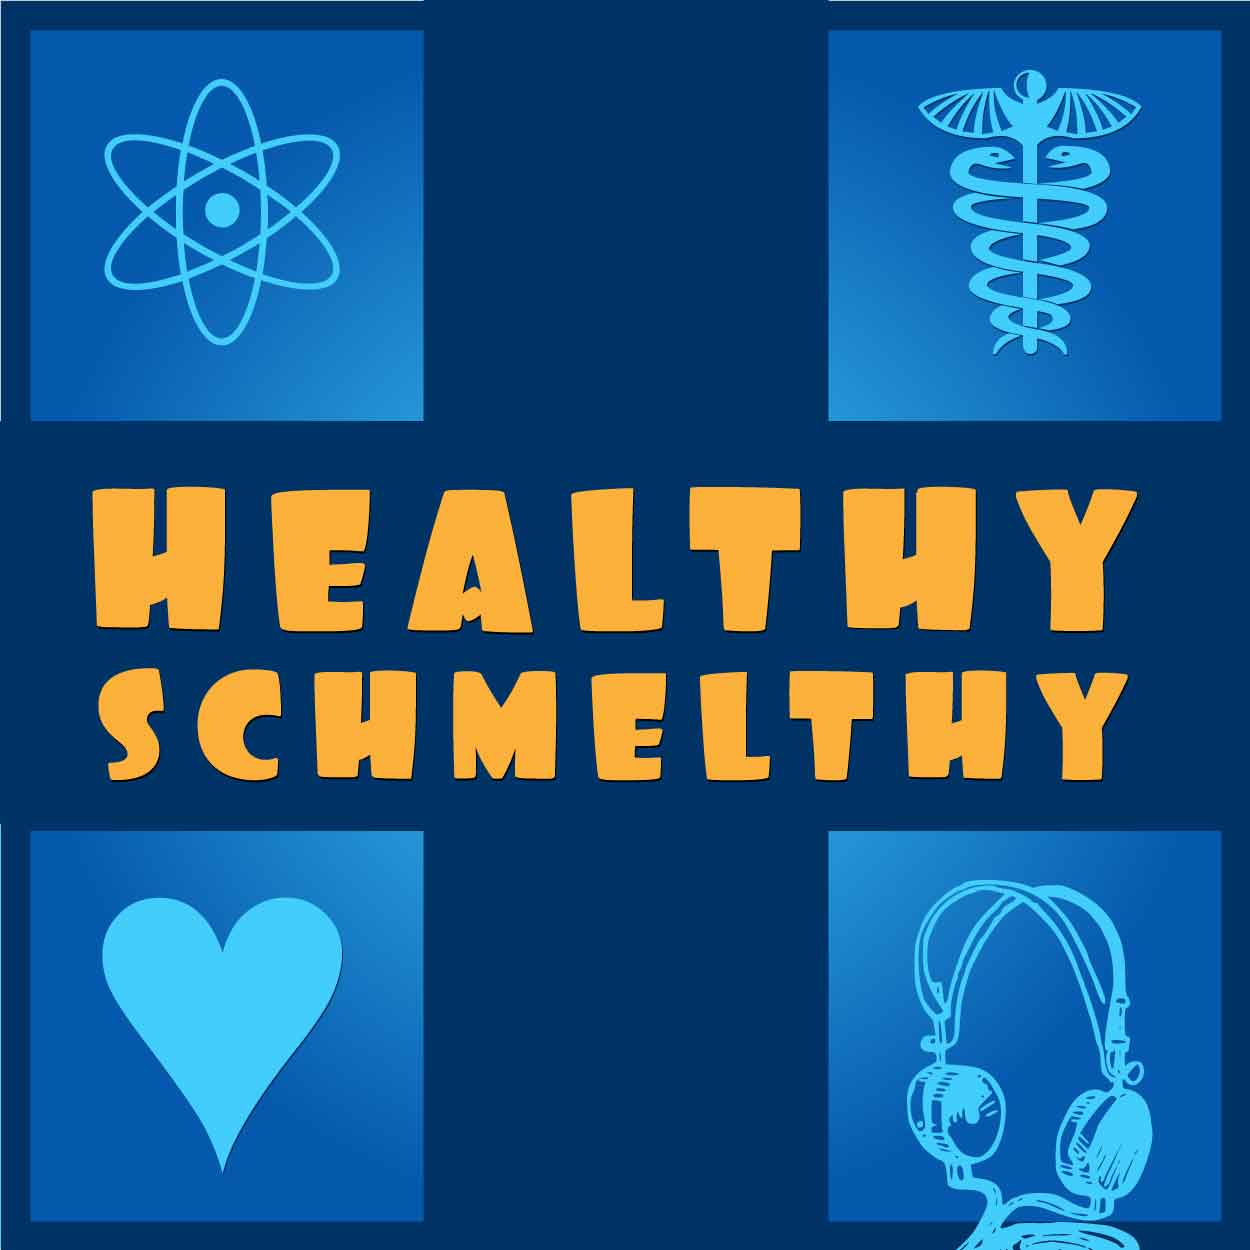 Healthy Schmelthy